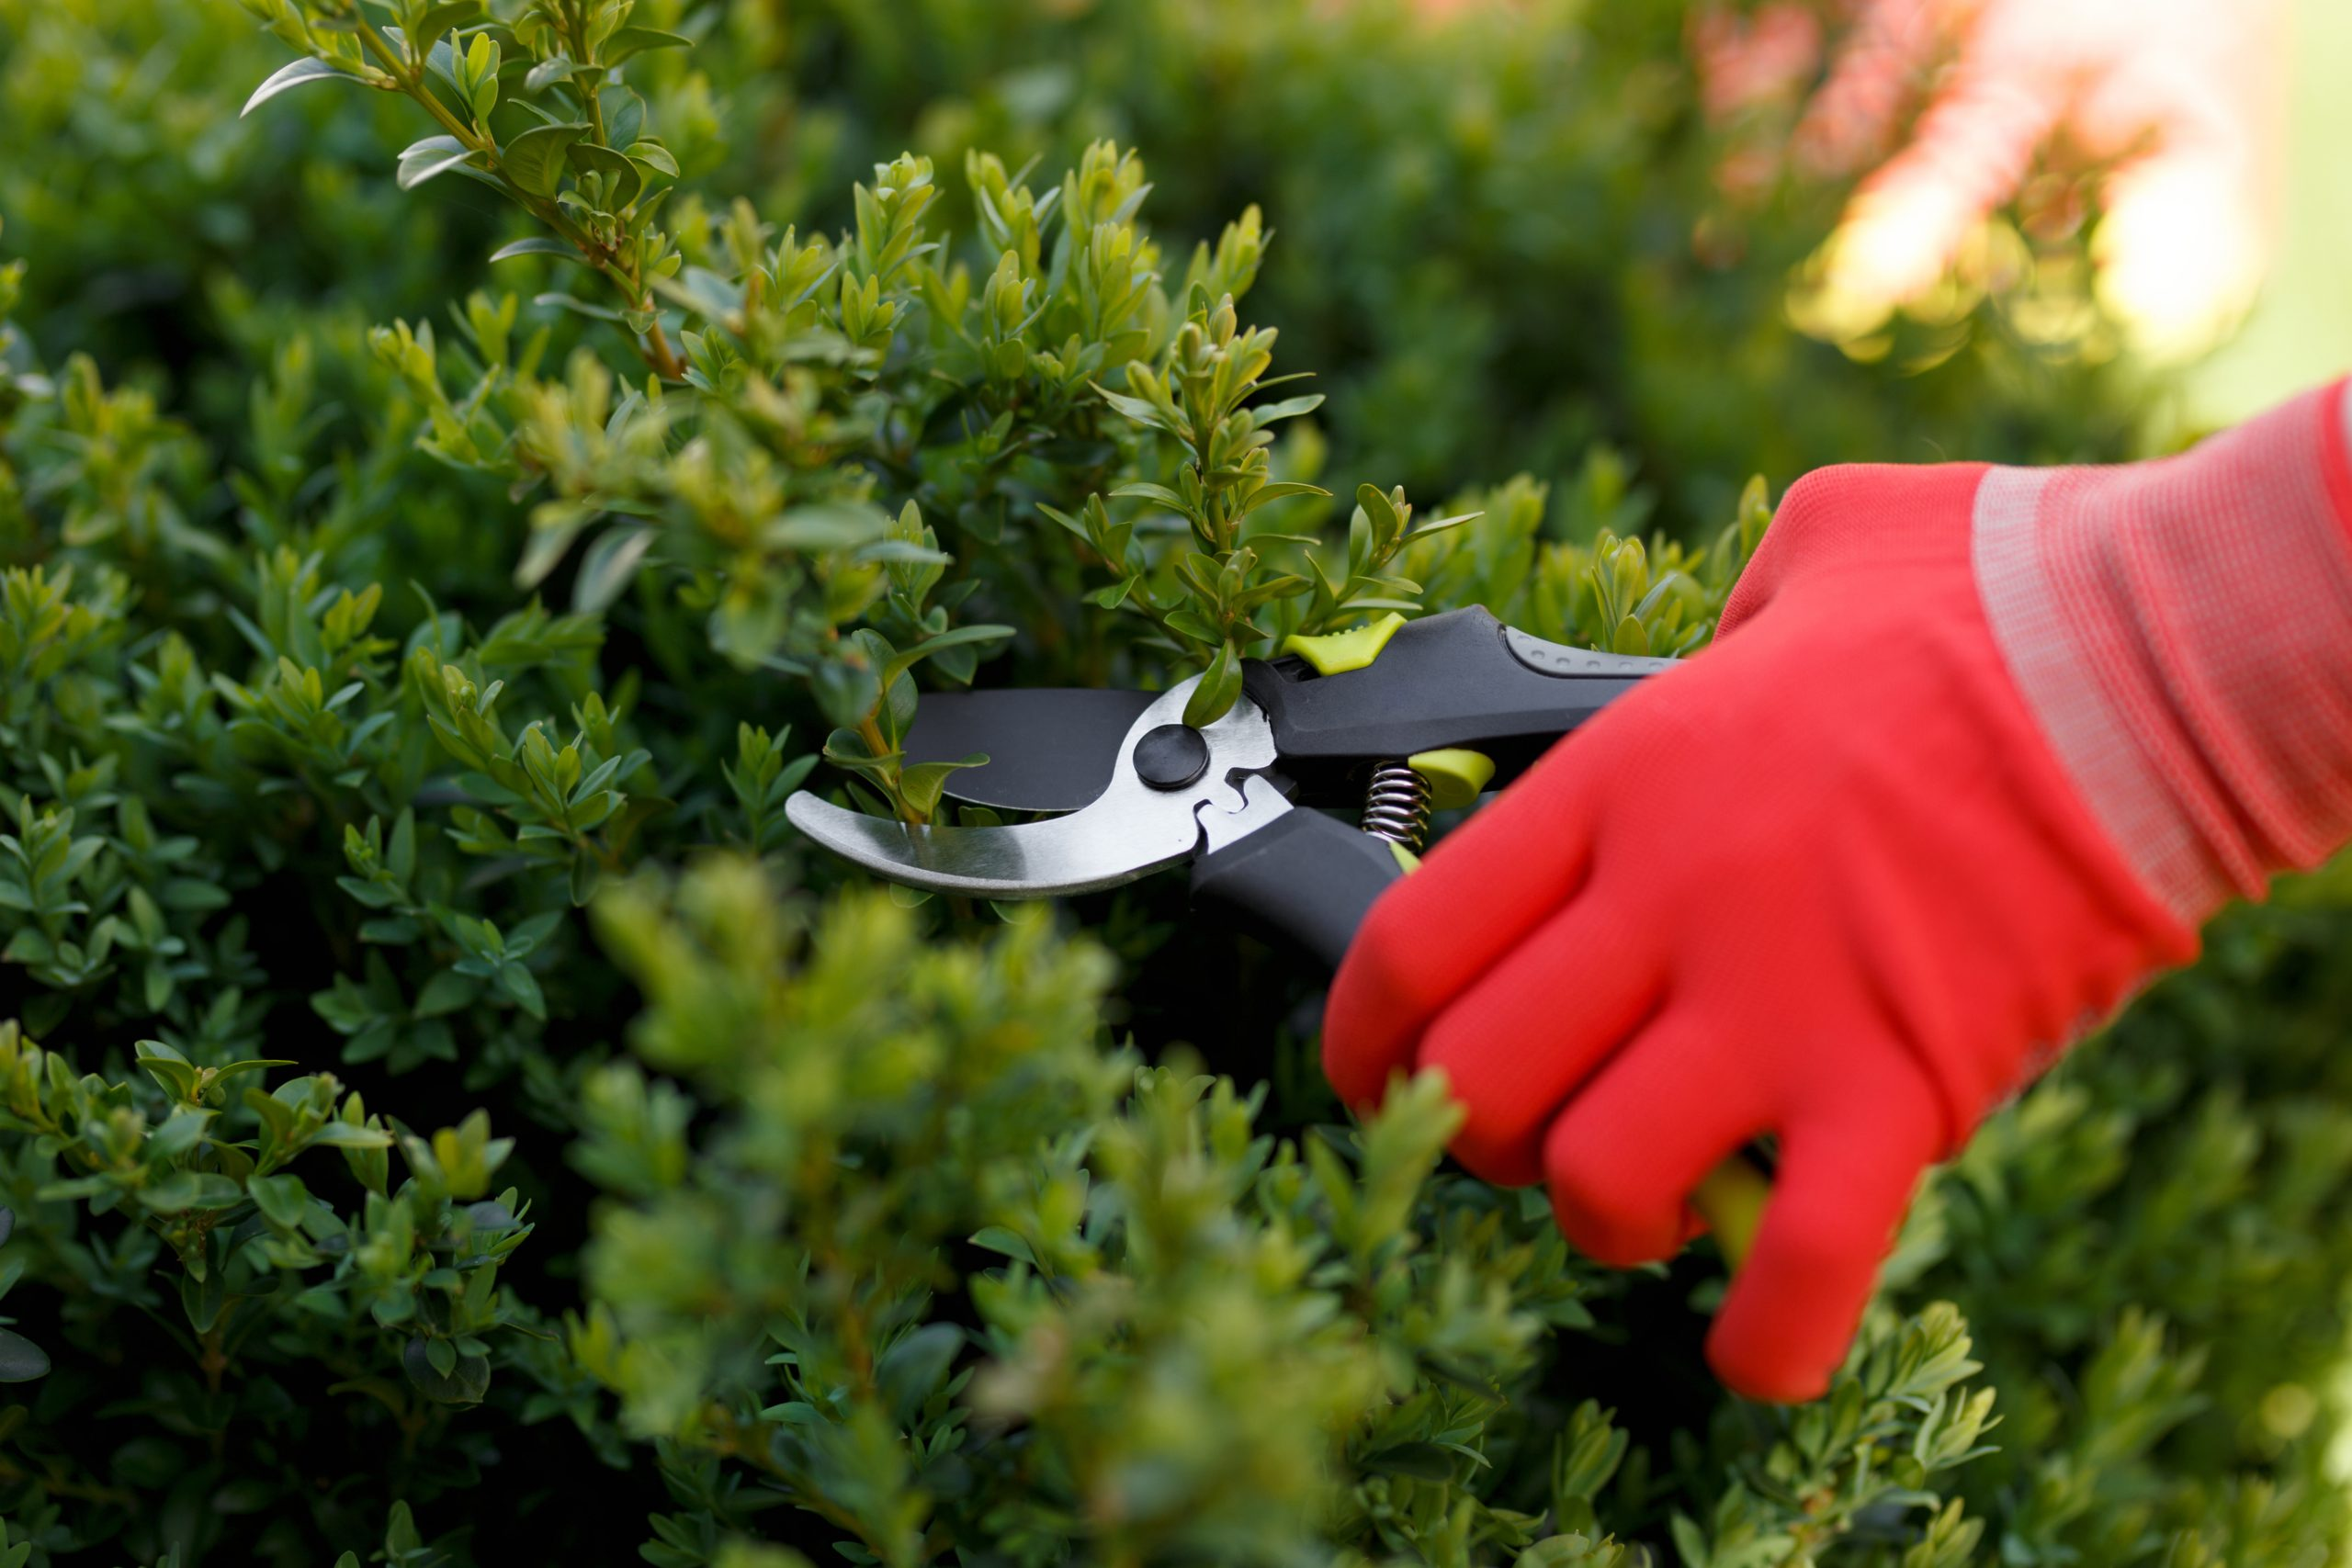 Girl cuts or trims the bush in the garden to illustrate When To Trim Bushes.